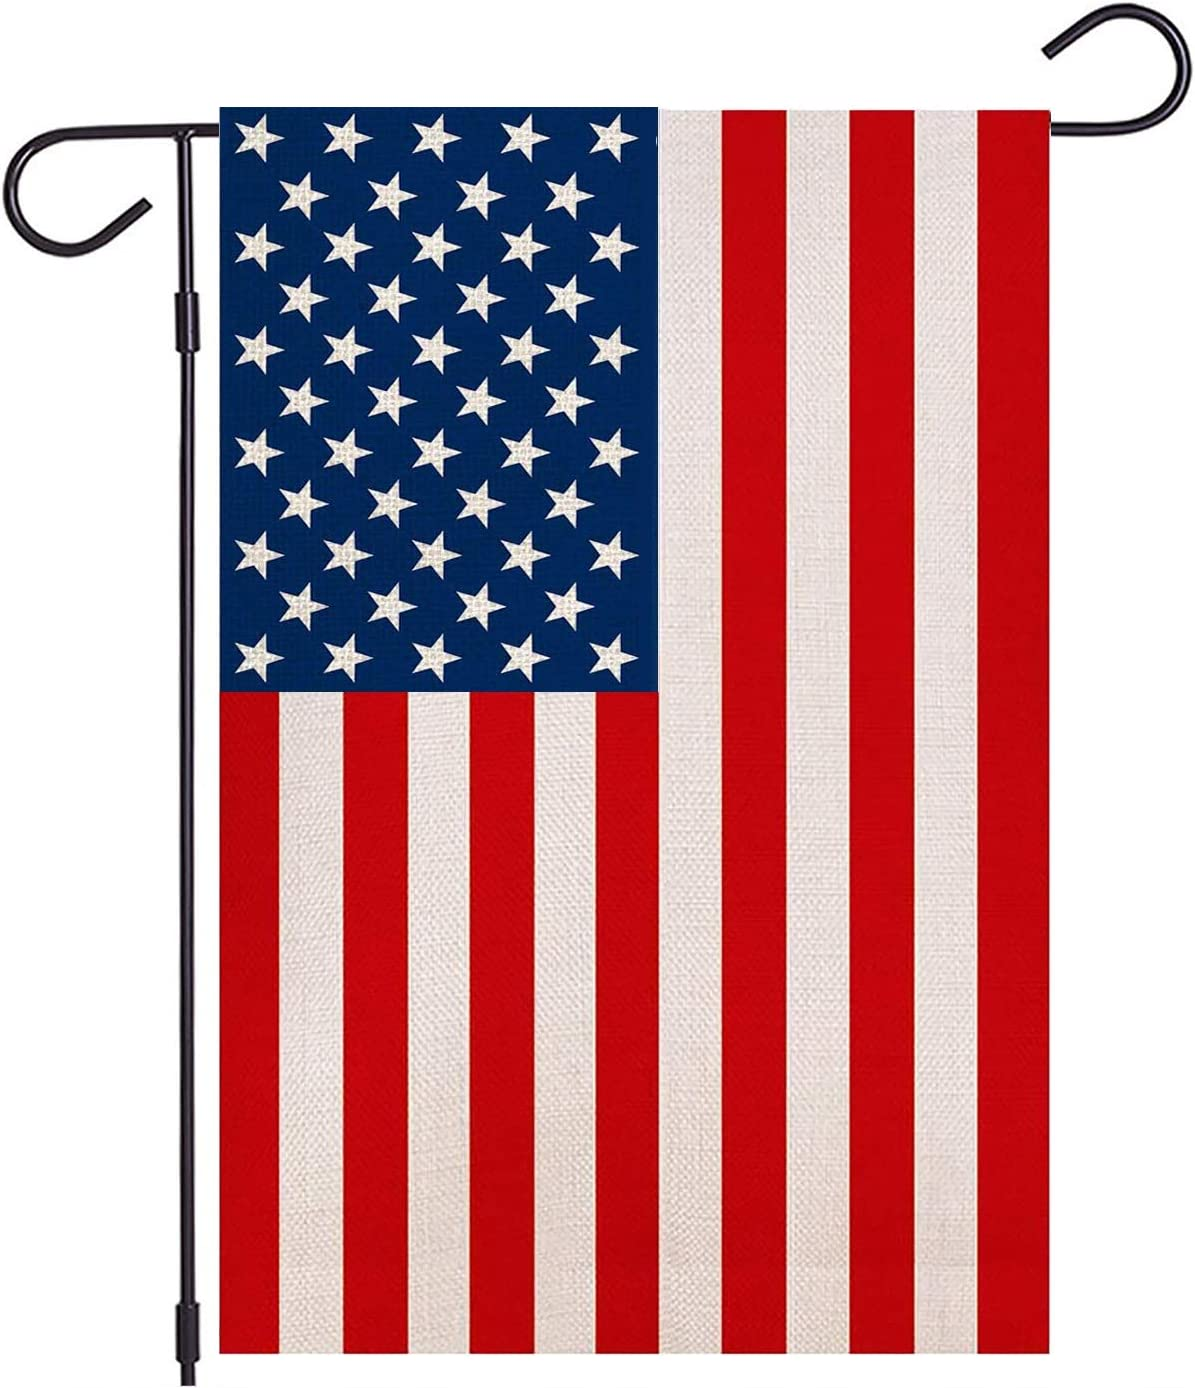 HUGSVIK Burlap American Flags Patriotic Garden Flags 12 x 18, Double-Sided US July 4th Garden Flag, Weatherproof Burlap USA Garden Flag Yard Flag for Independence Day American Election Yard Decor